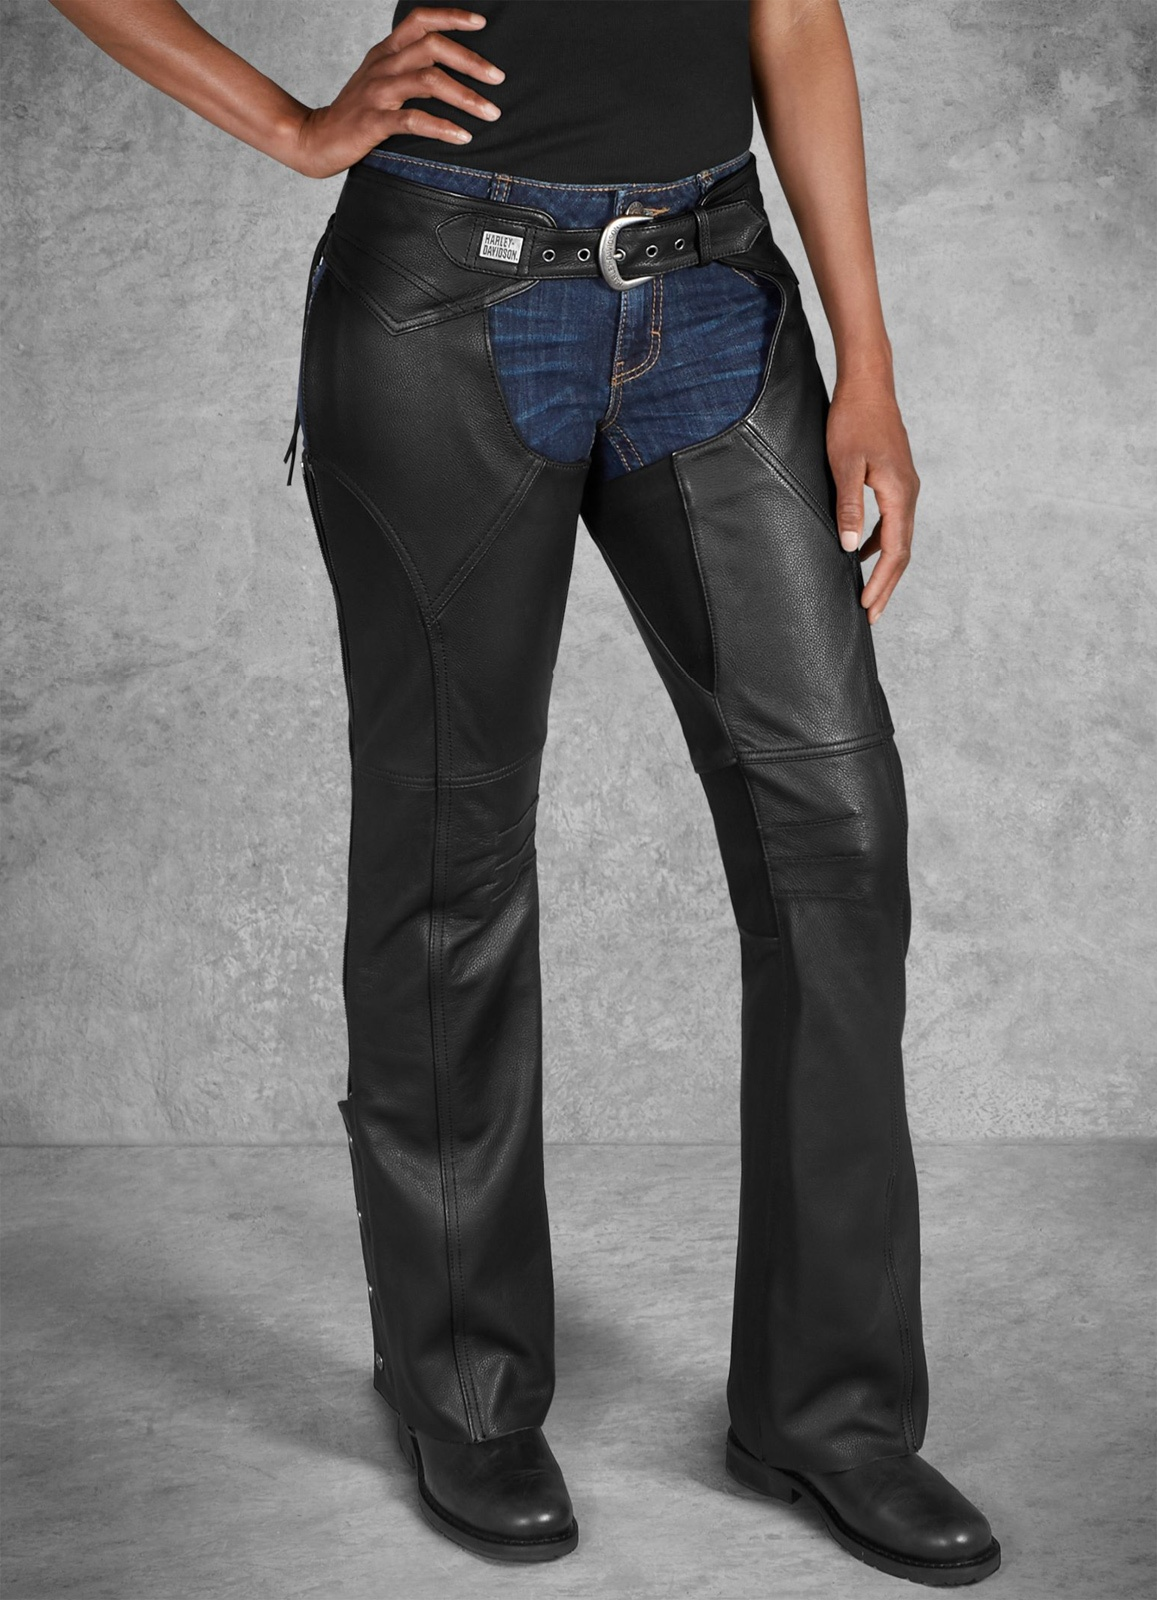 98046 19VW Harley Davidson Women's Leather Chaps Deluxe II